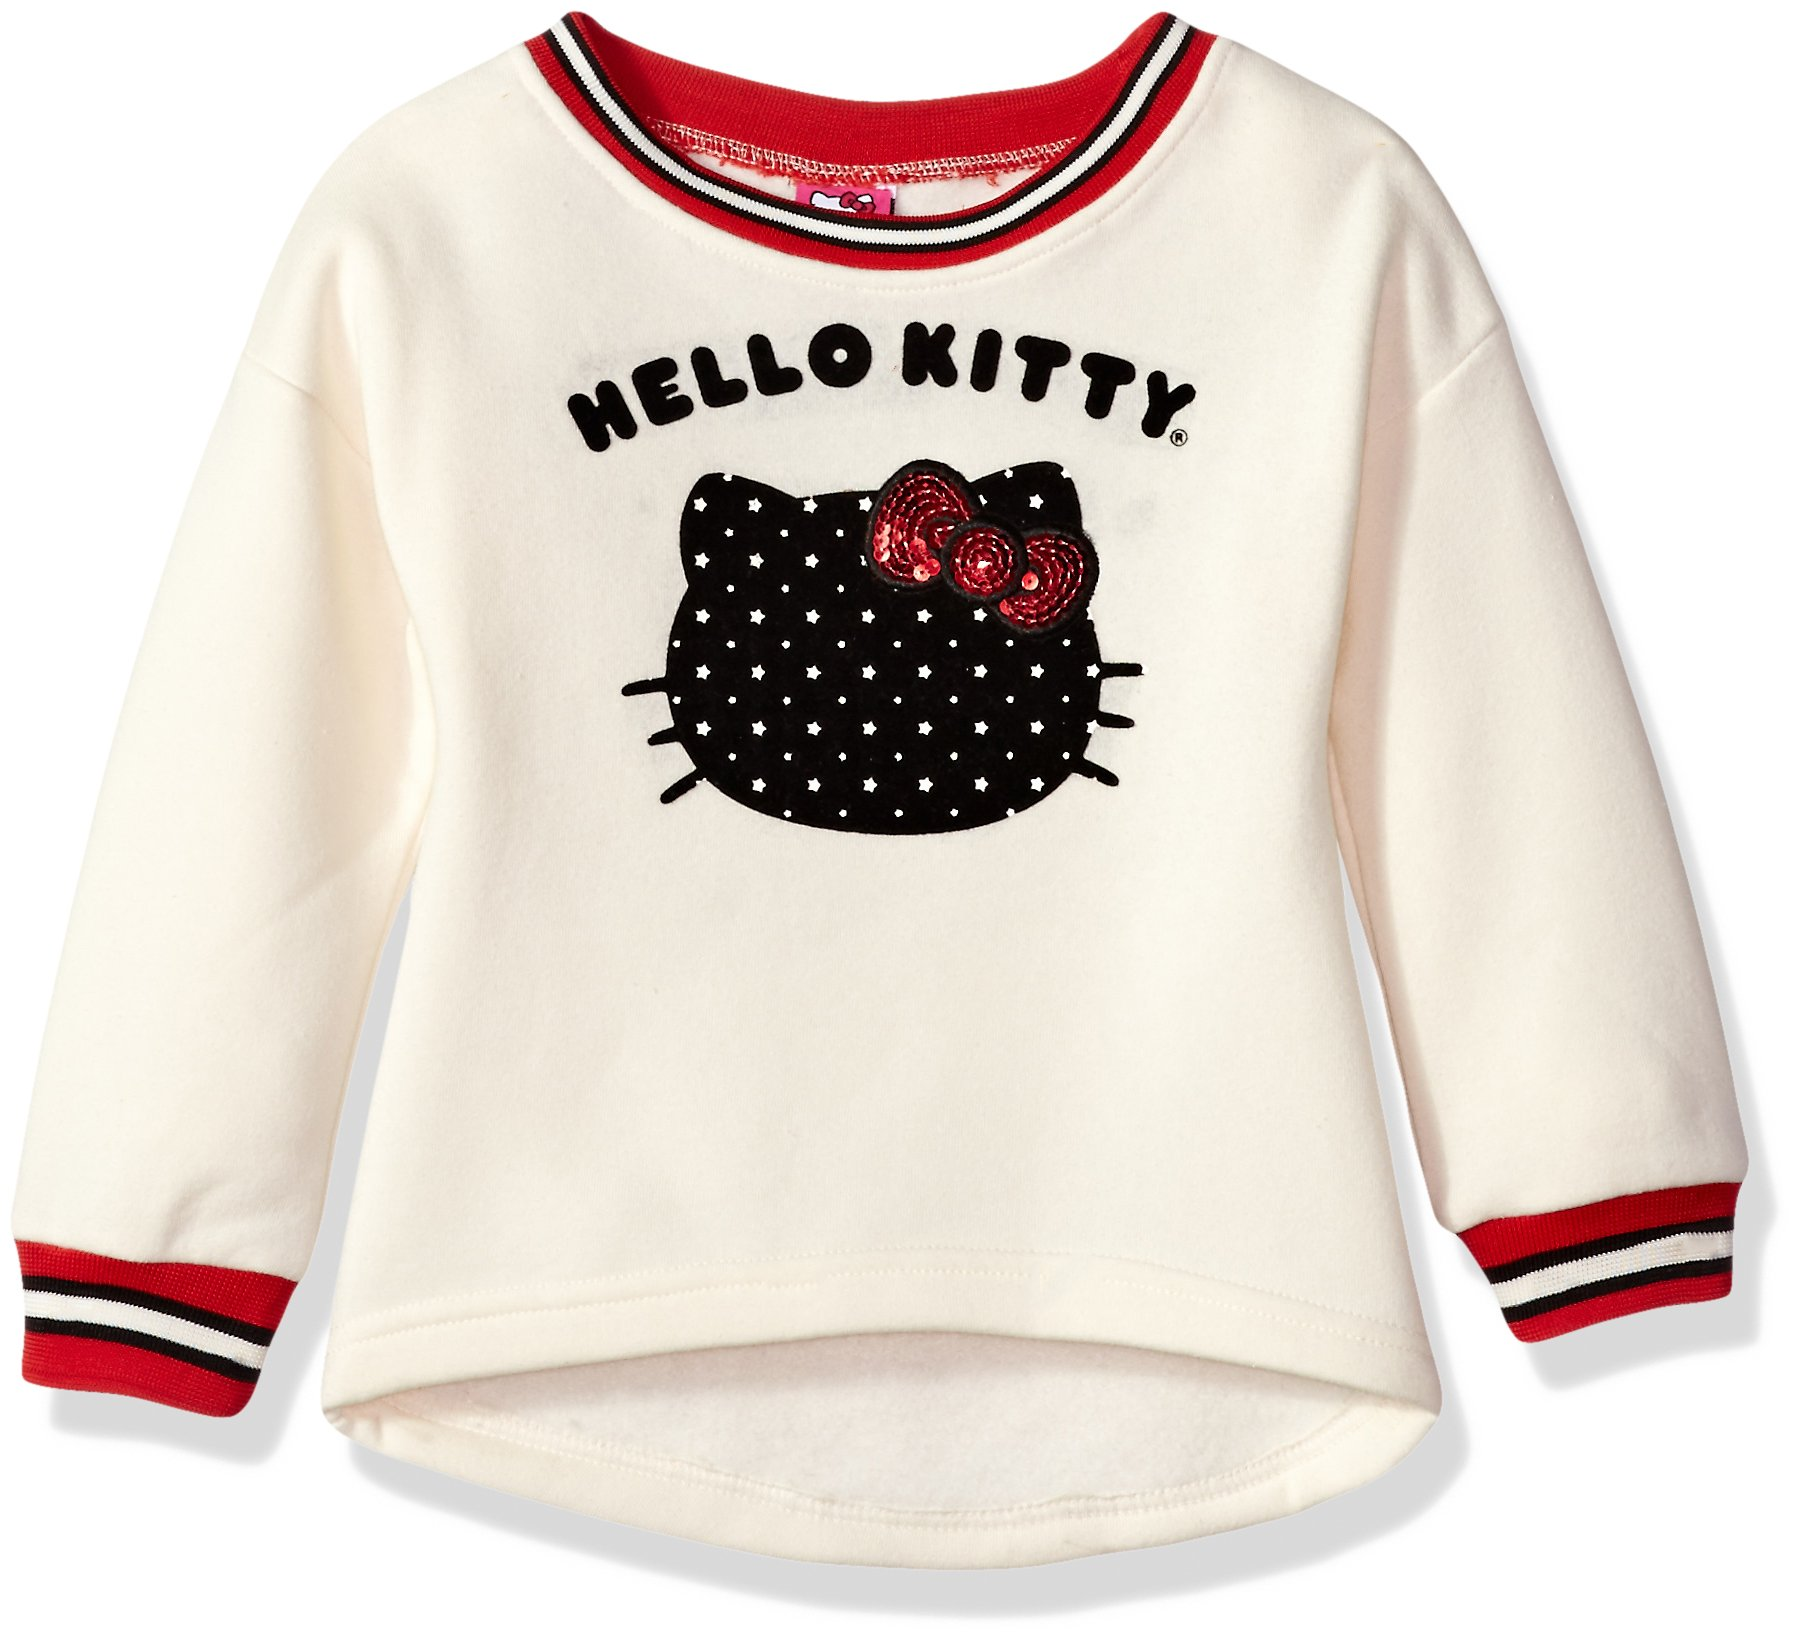 Hello Kitty Big Girls' Sweatshirt with Sugar Glitter Flocking and Fashion Rib, Cream, 7 by Hello Kitty (Image #1)